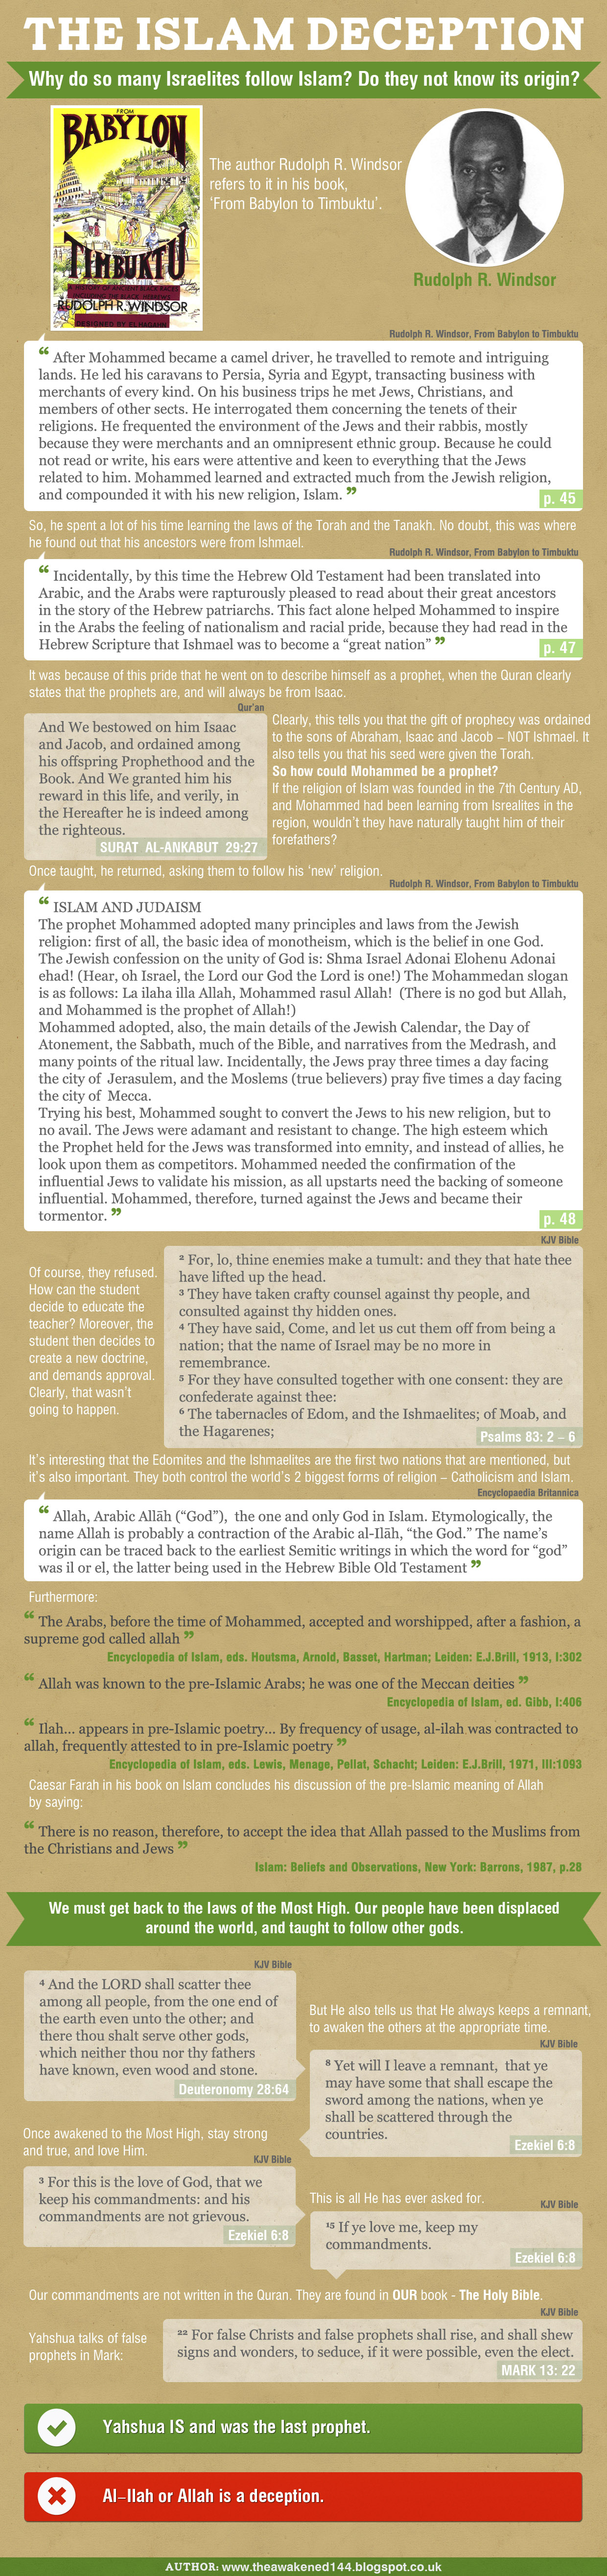 Name and meaning of the sons of ishmael - We Descend From Isaac Not Ishmael